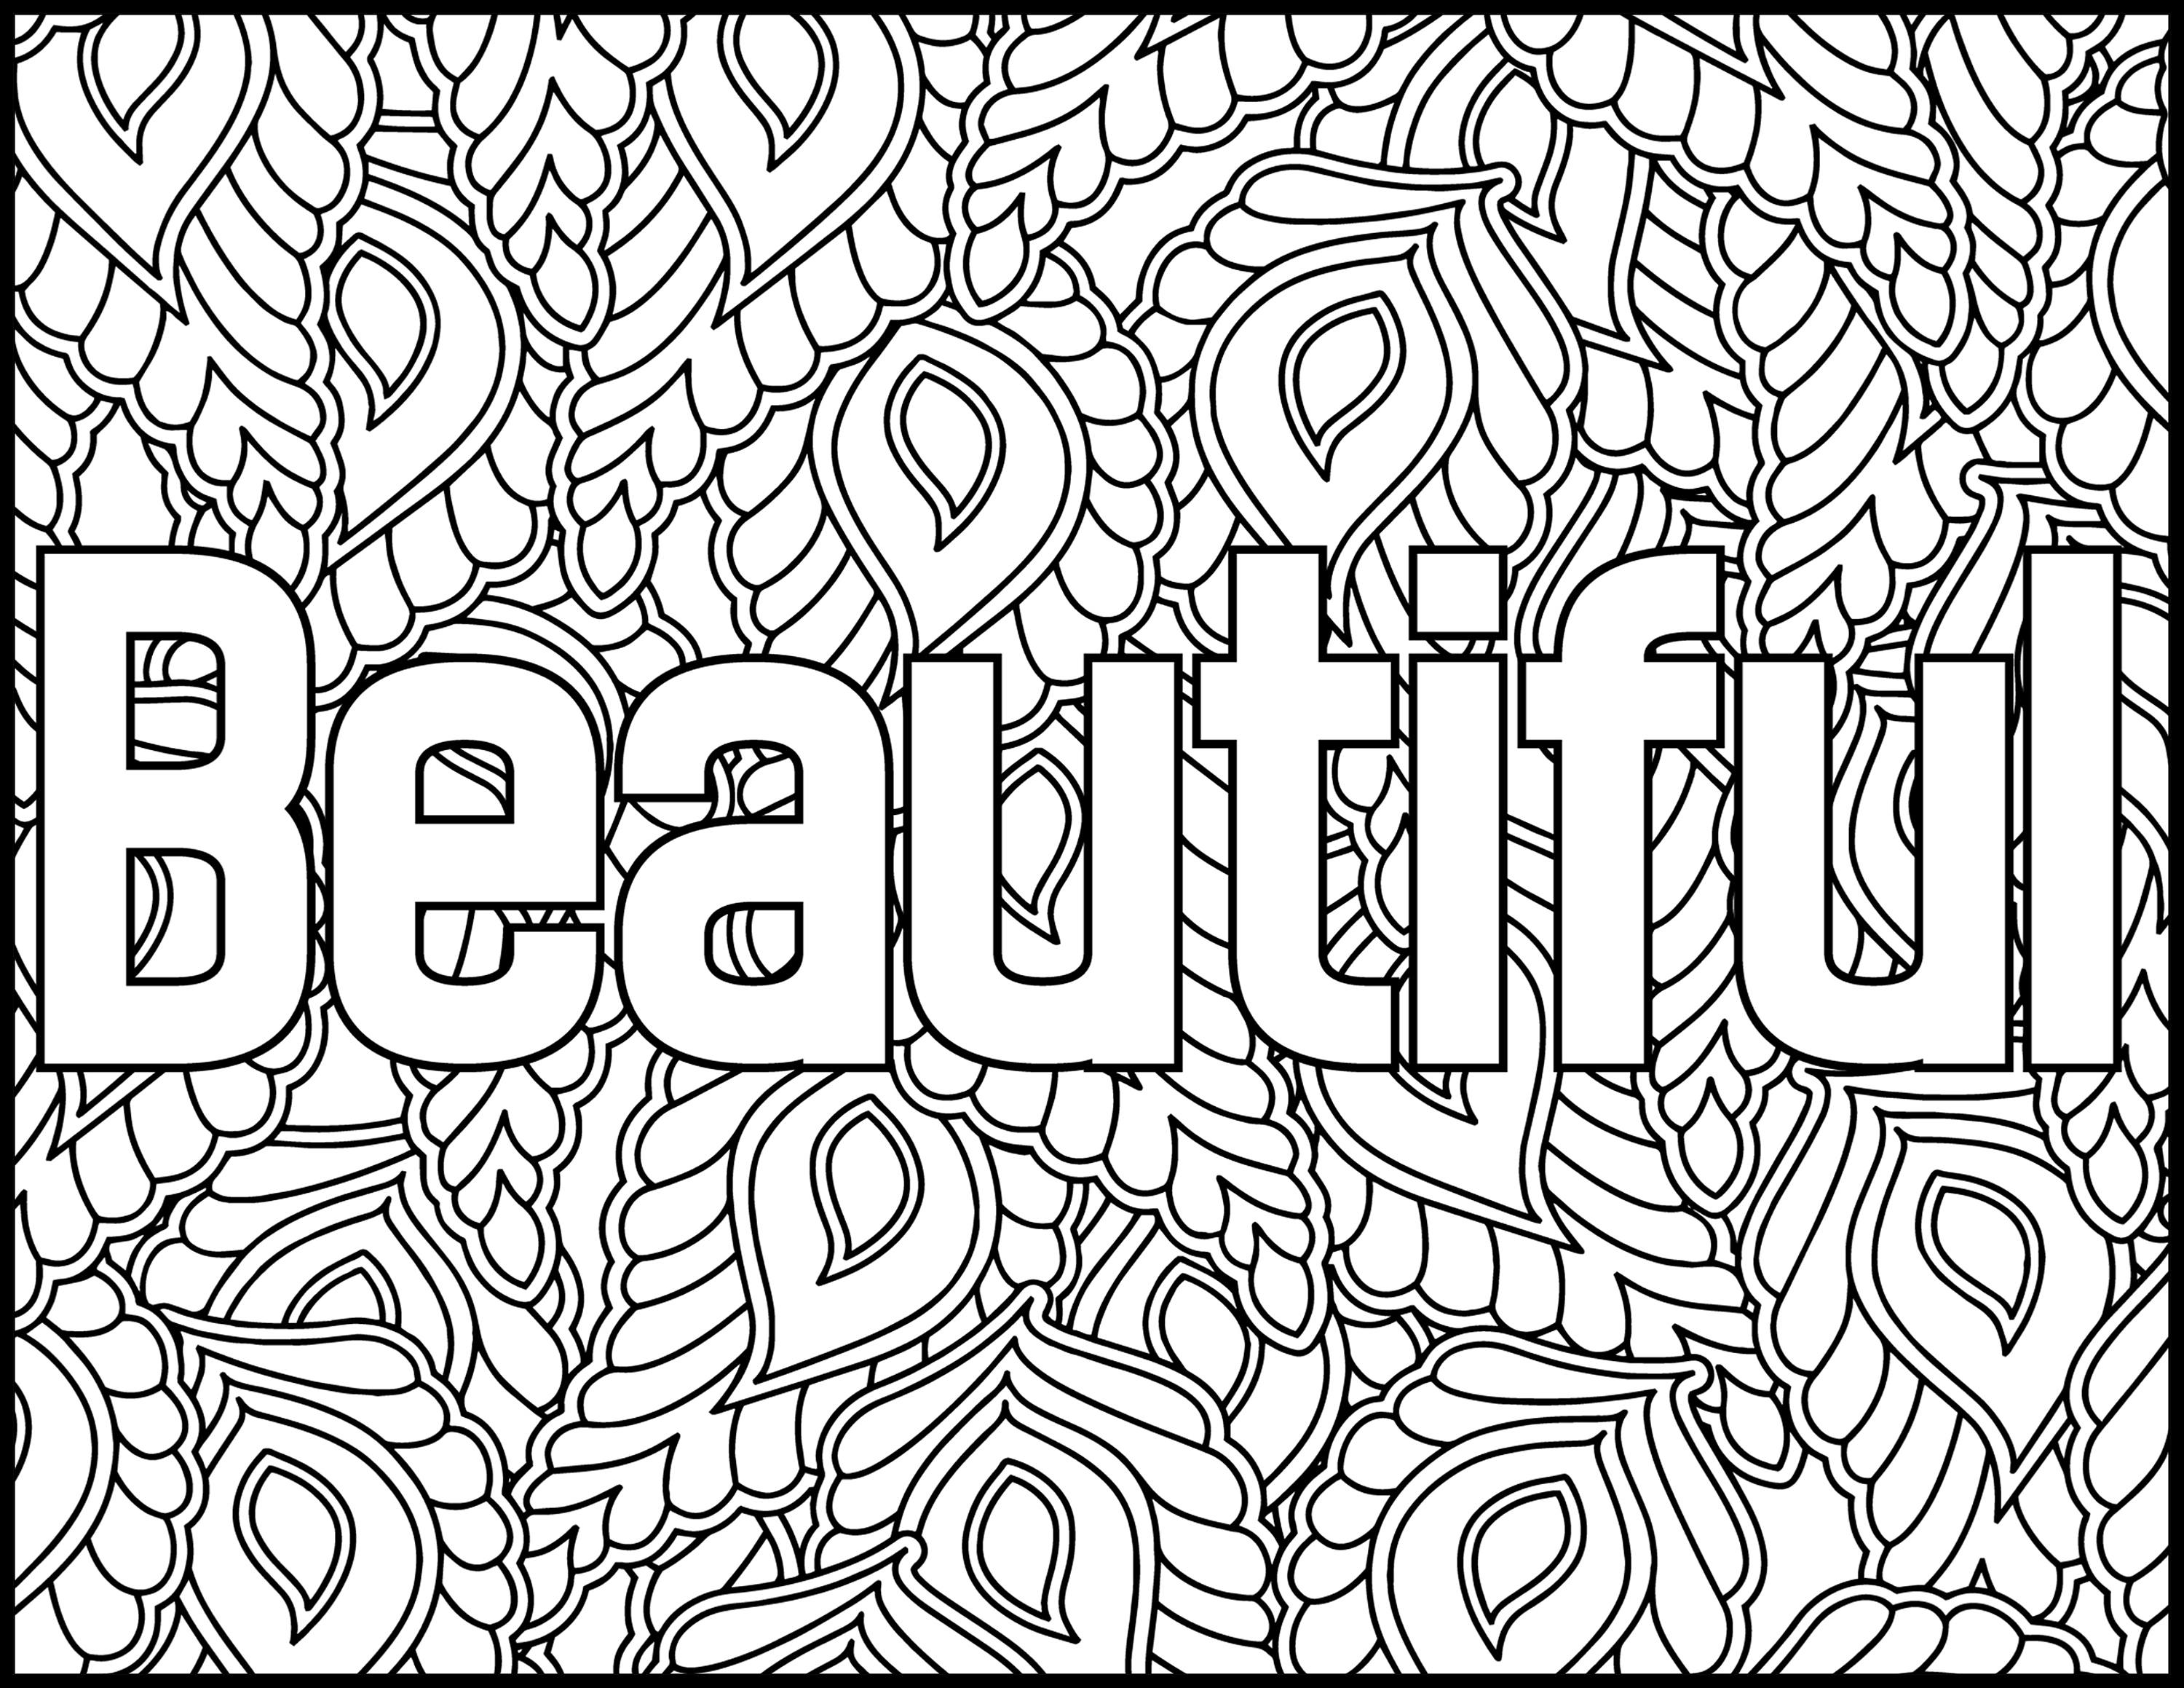 grown up coloring pages inspirational | Positive Affirmations Coloring Pages for Adults-Beautiful ...